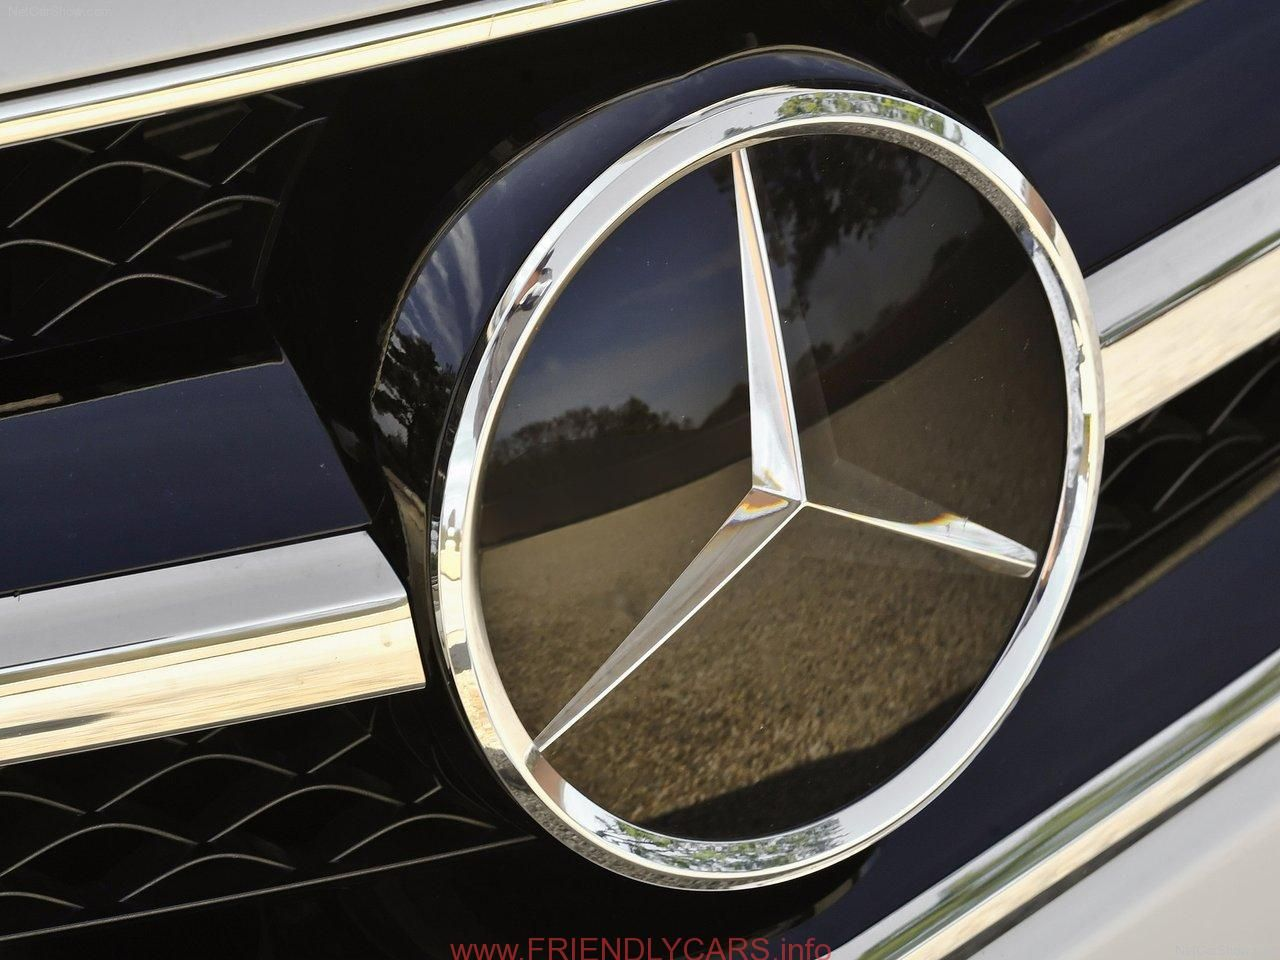 Awesome mercedes amg logo wallpaper car images hd all cars - Mercedes car logo hd wallpaper ...